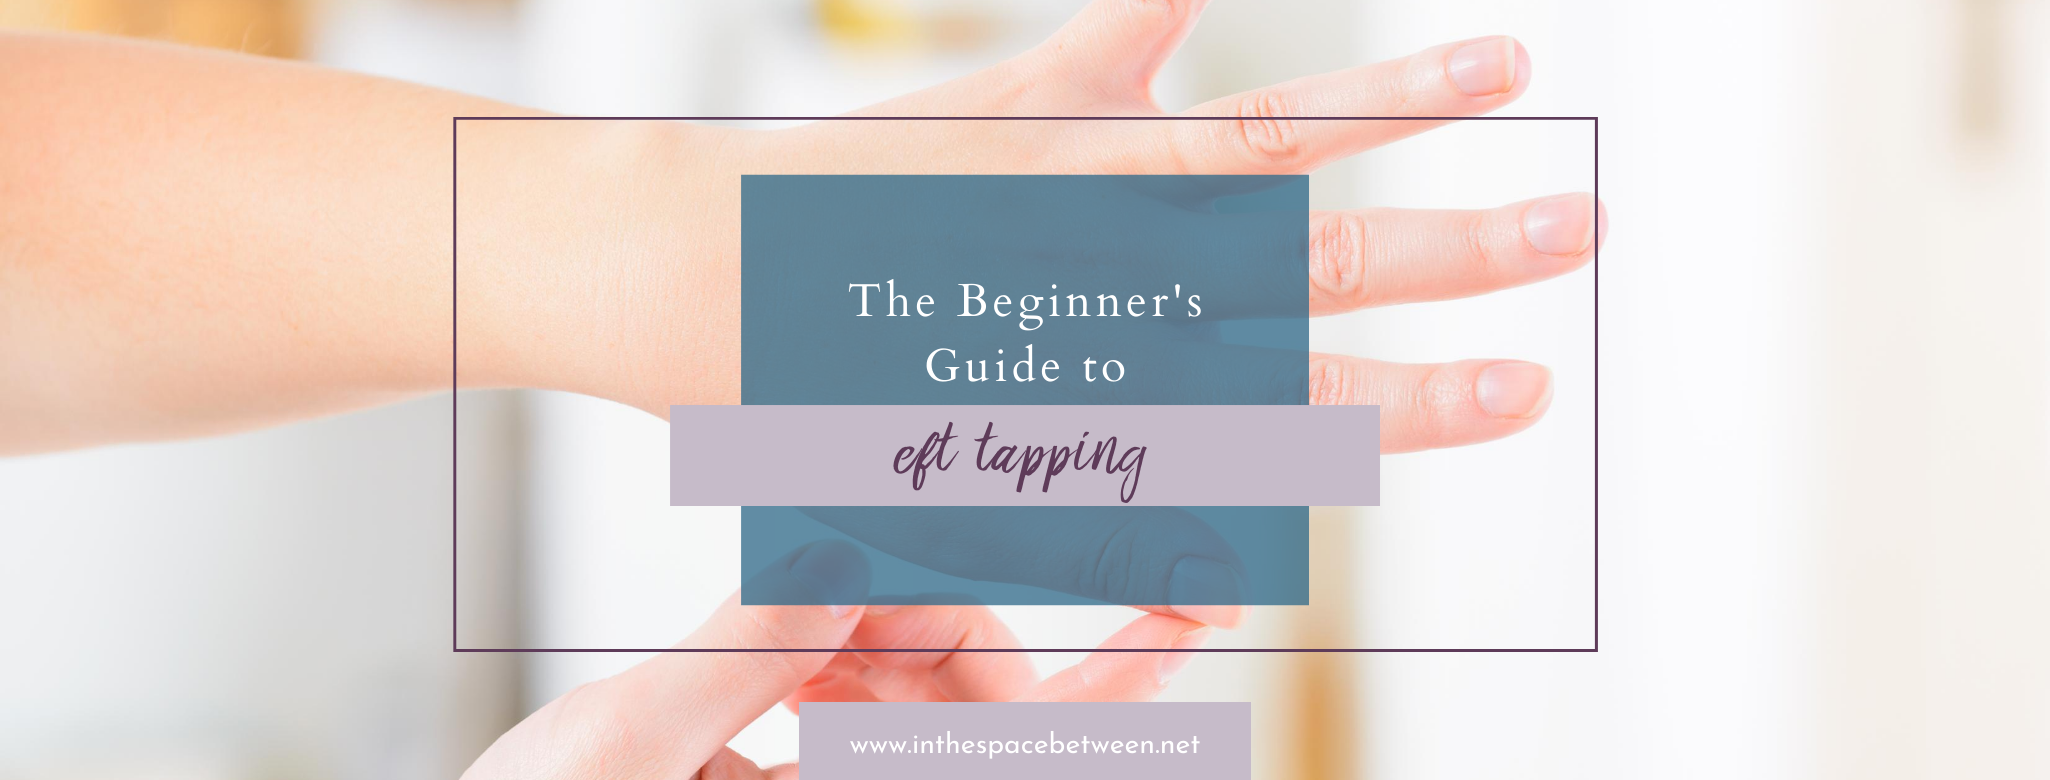 Feel Relief Fast with the Beginner's Guide to Tapping